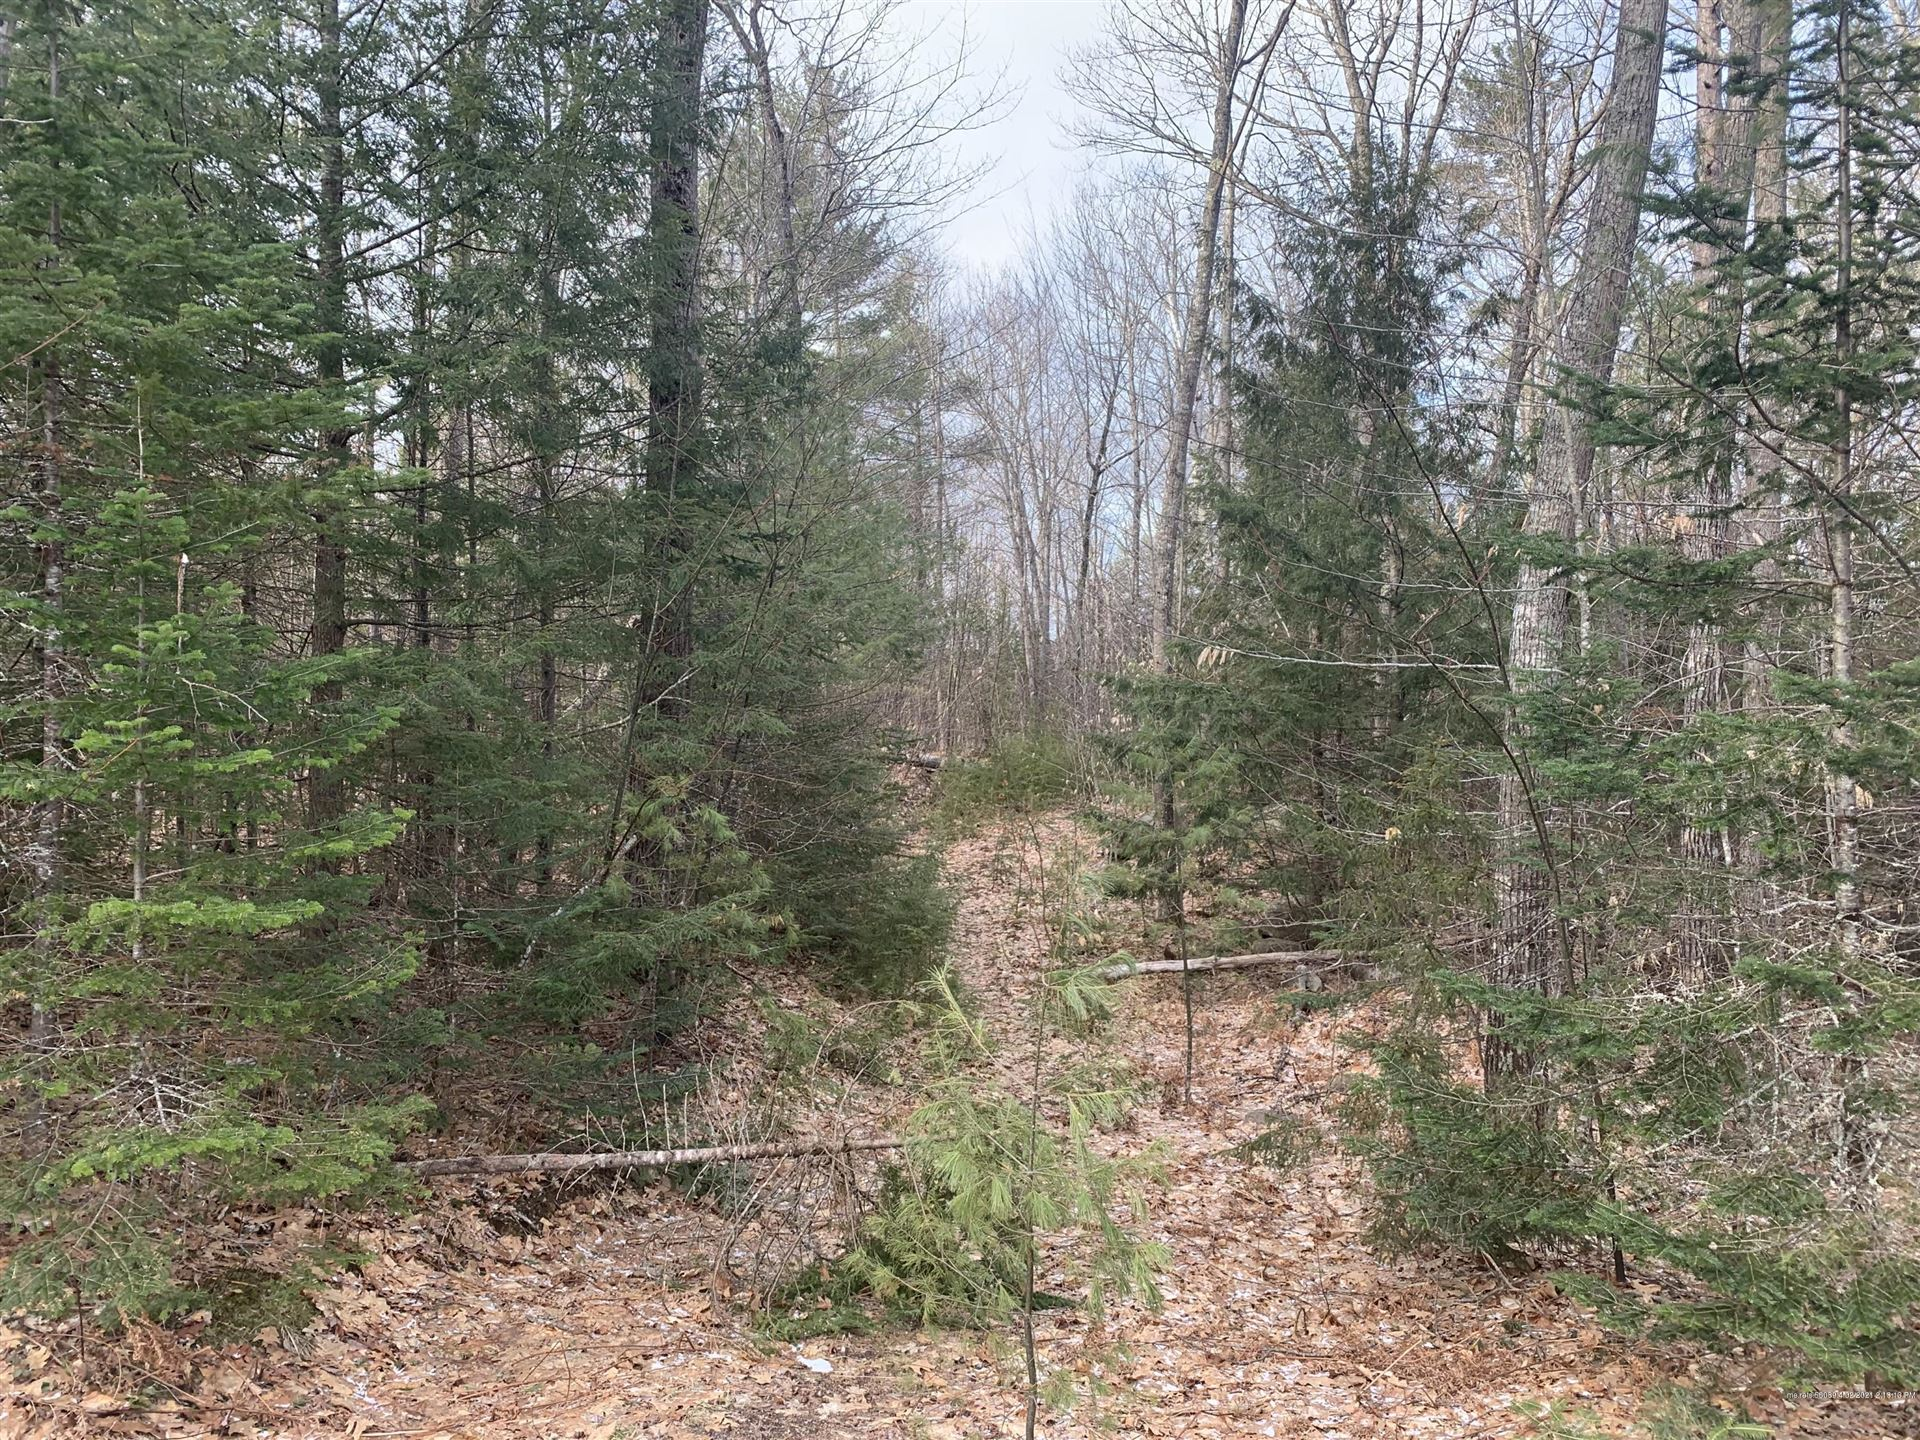 Photo of Lot 6 Hickory Drive, Woodstock, ME 04219 (MLS # 1480399)